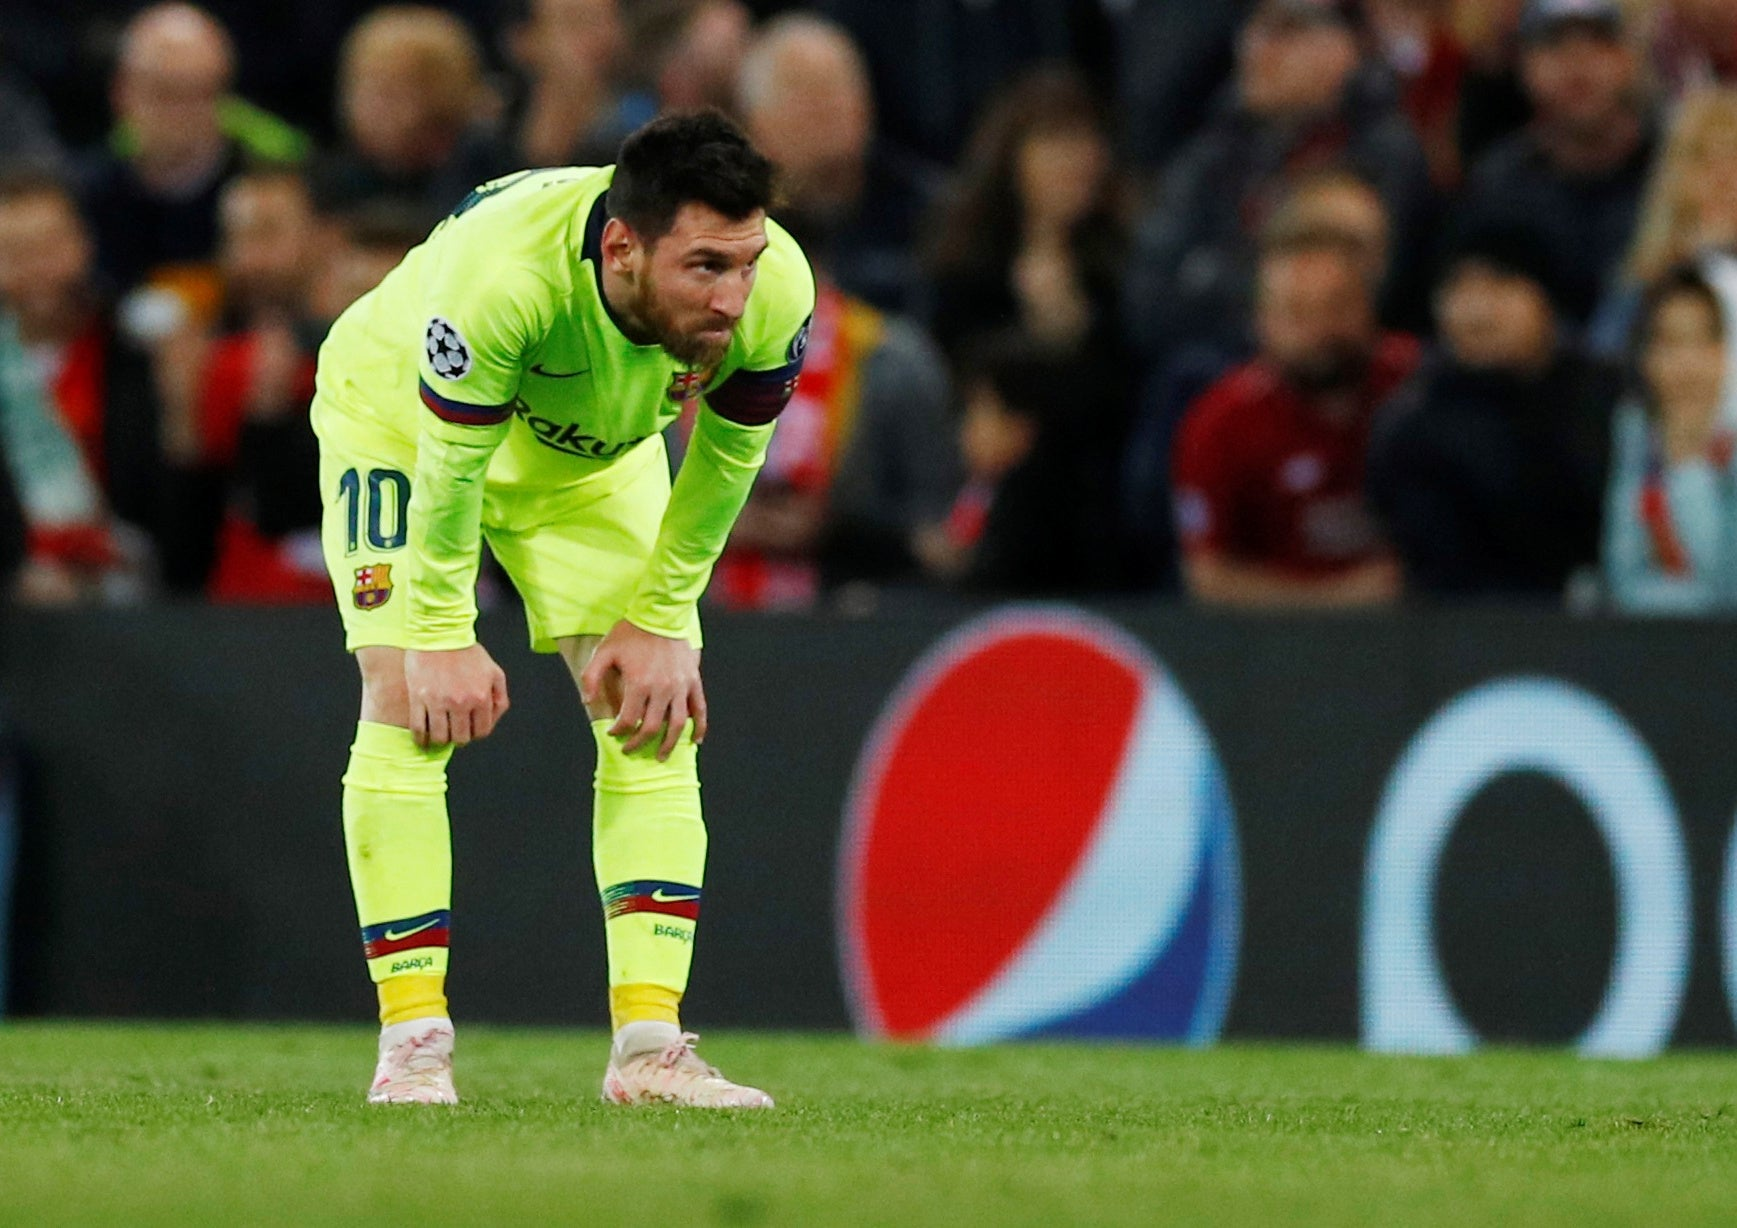 Liverpool vs Barcelona: Those who dared to dream inspired